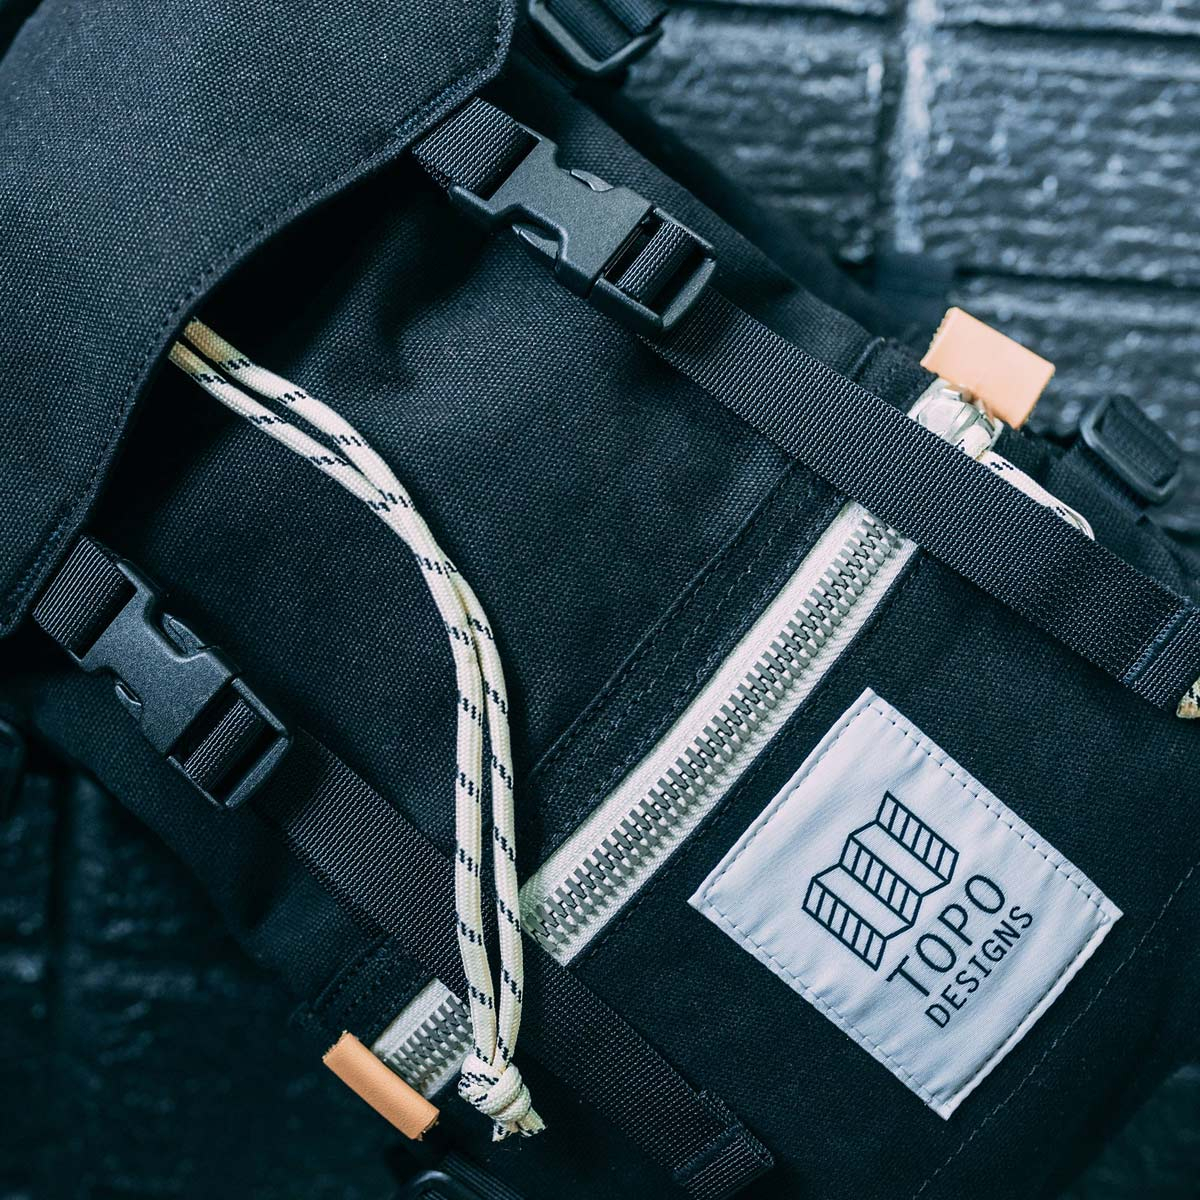 Topo Designs Rover Pack - Mini Canvas Black, statement-making bag that's the perfect size for errands around town or on the trail